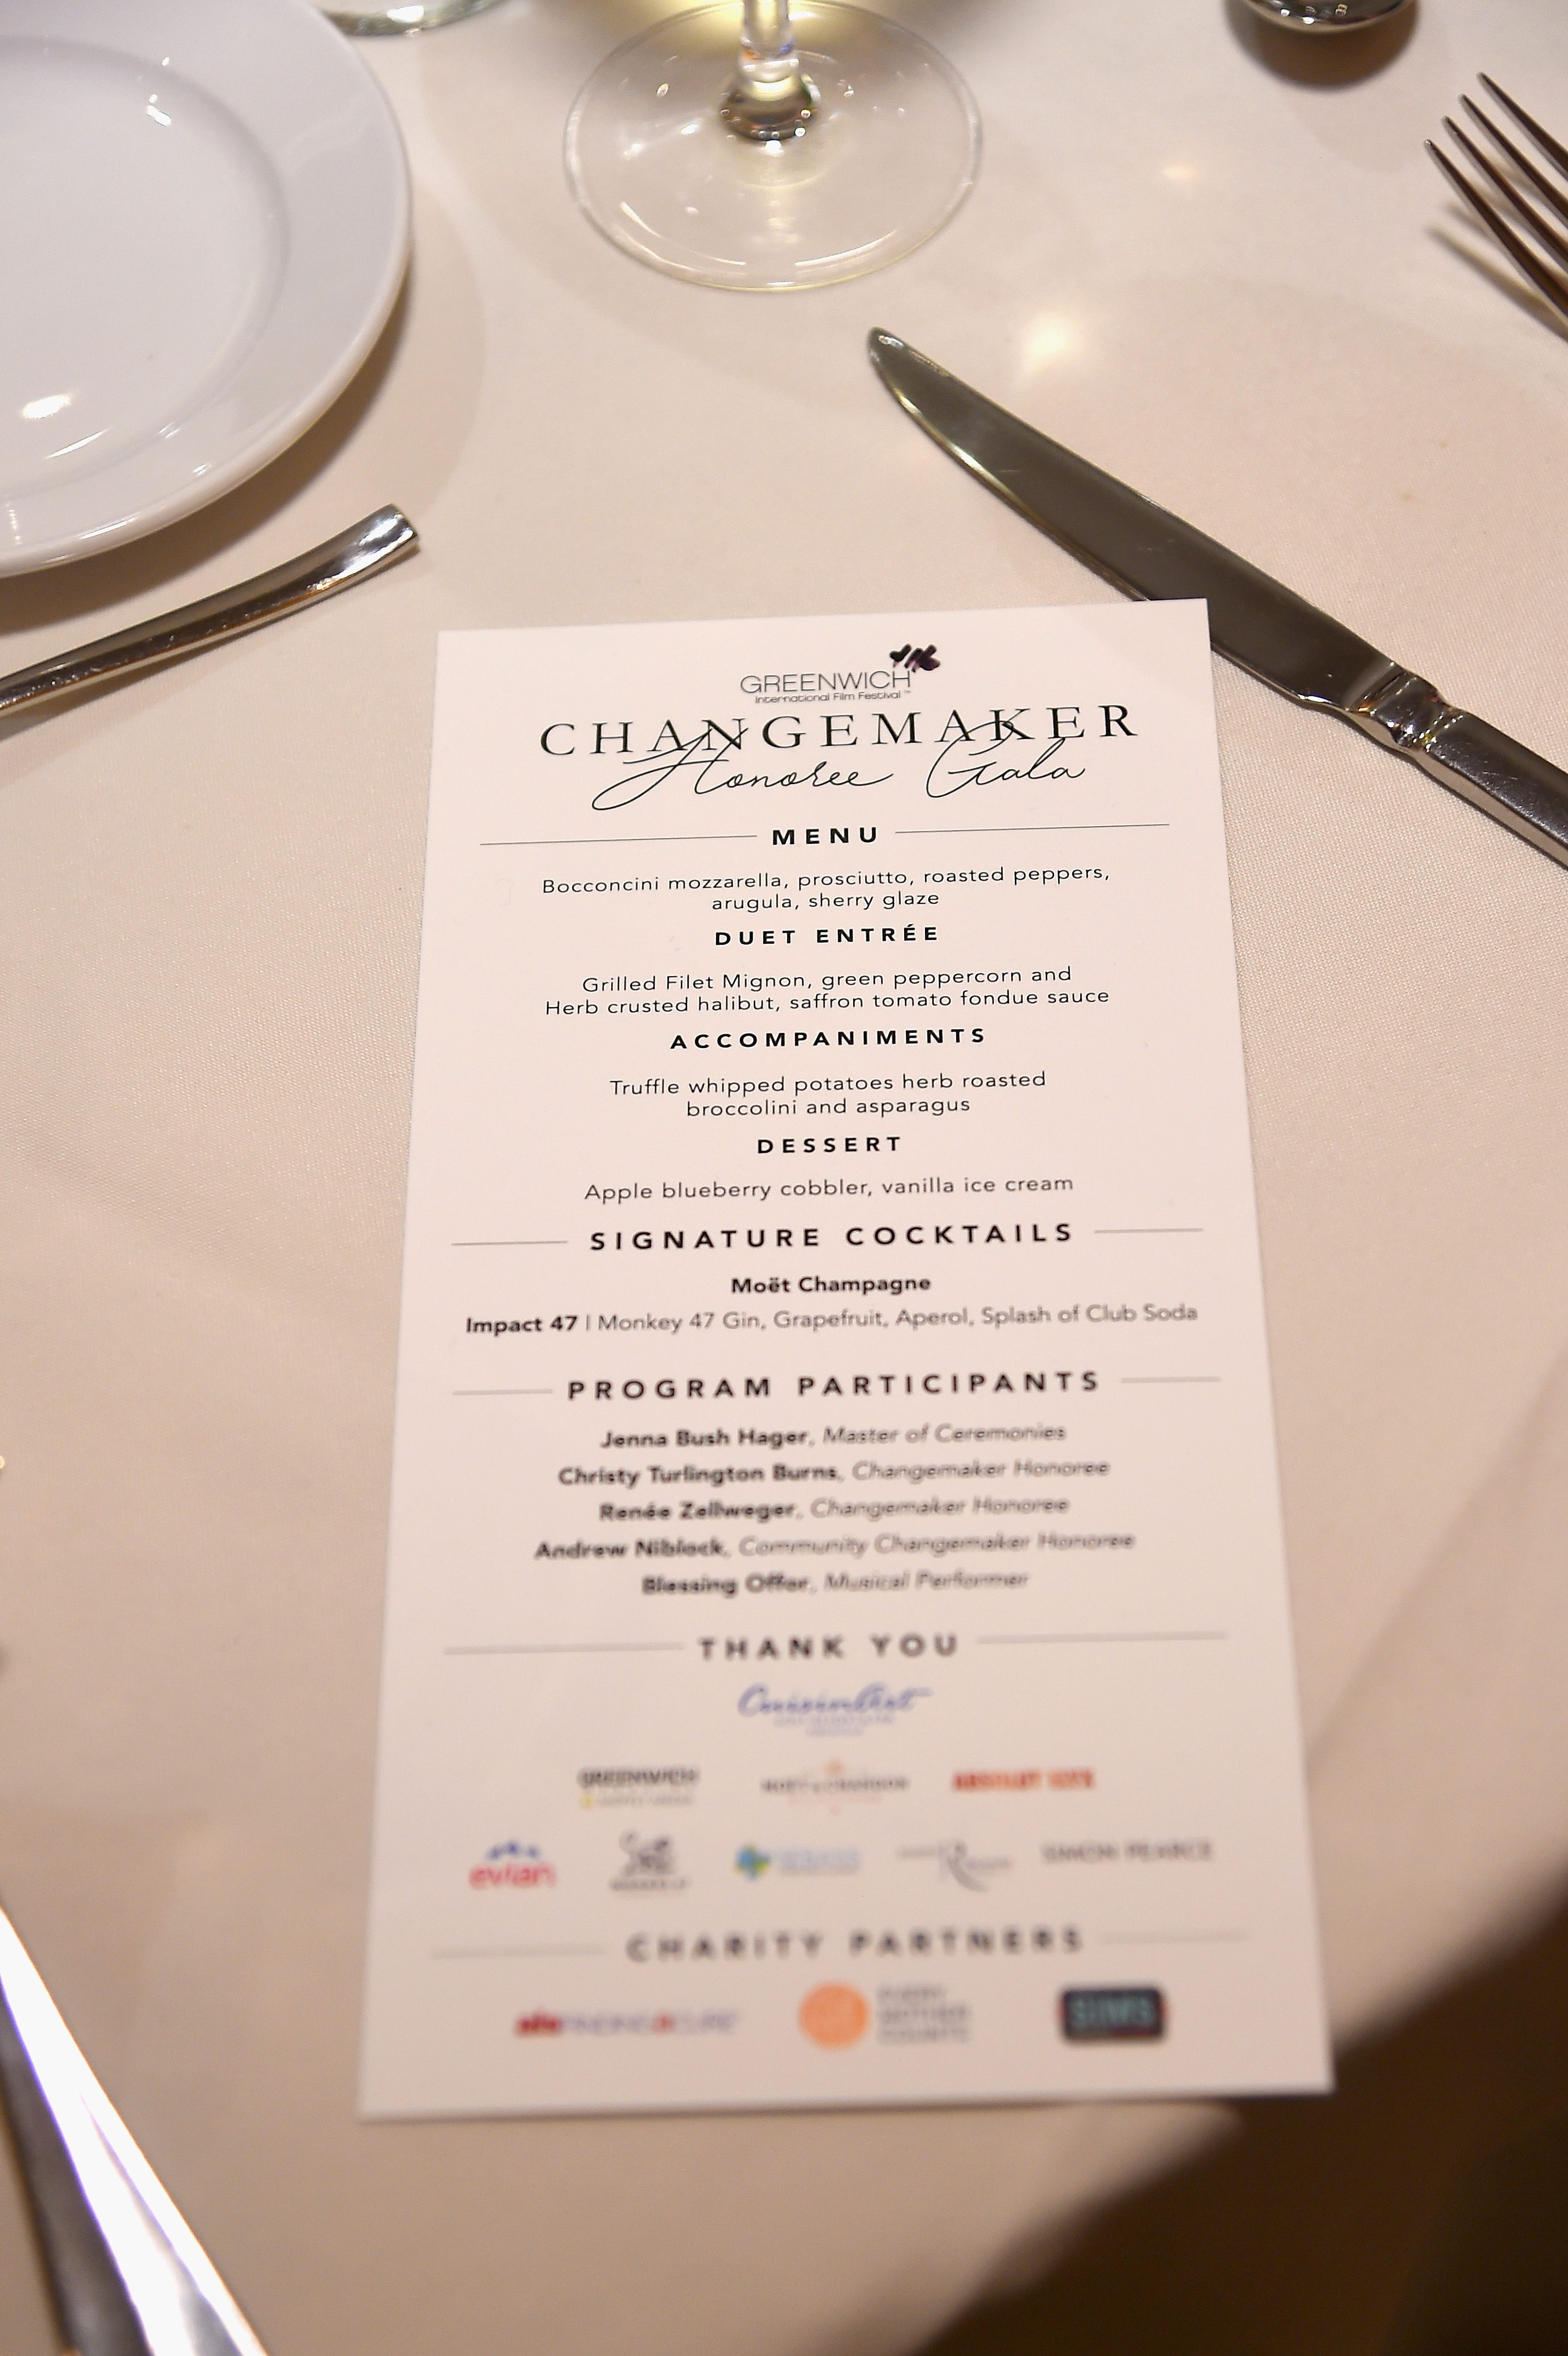 GREENWICH, CT - JUNE 01:  A view of the menu at the Changemaker Honoree Gala during the Greenwich International Film Festival on June 1, 2017 in Greenwich, Connecticut.  (Photo by Ben Gabbe/Getty Images for Greenwich International Film Festival)